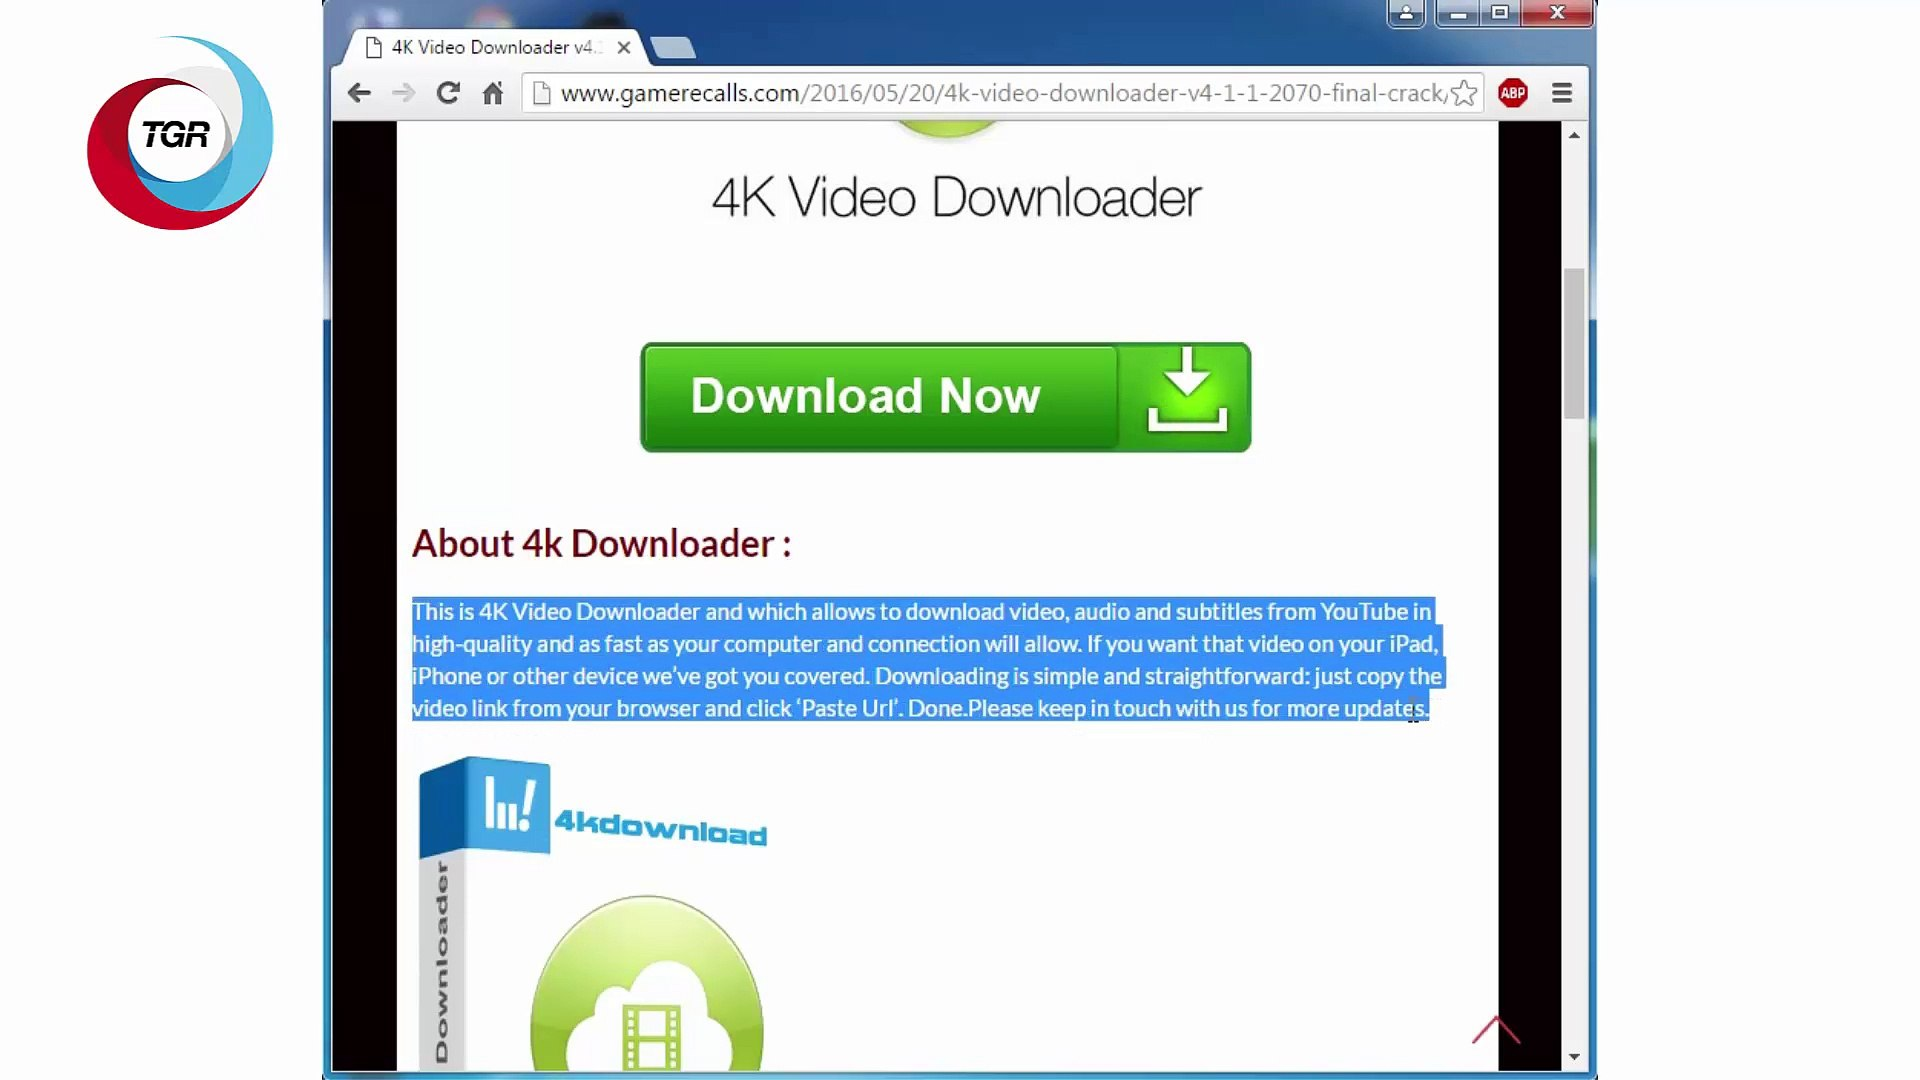 4K Video Downloader v4 1 1 2070 Final PLus Crack